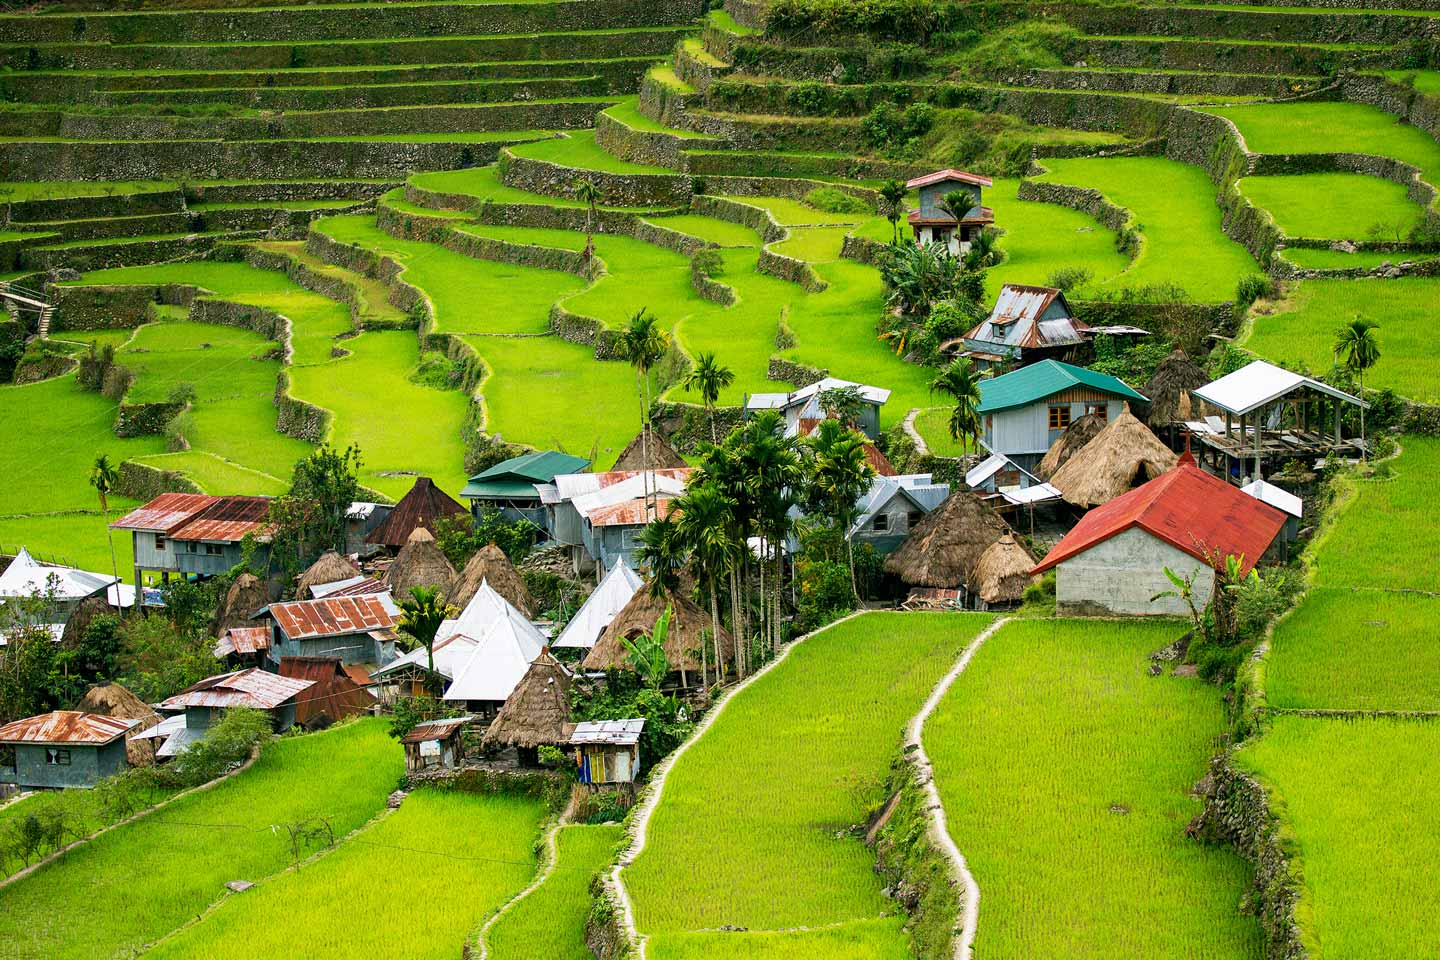 Philippines rice fields